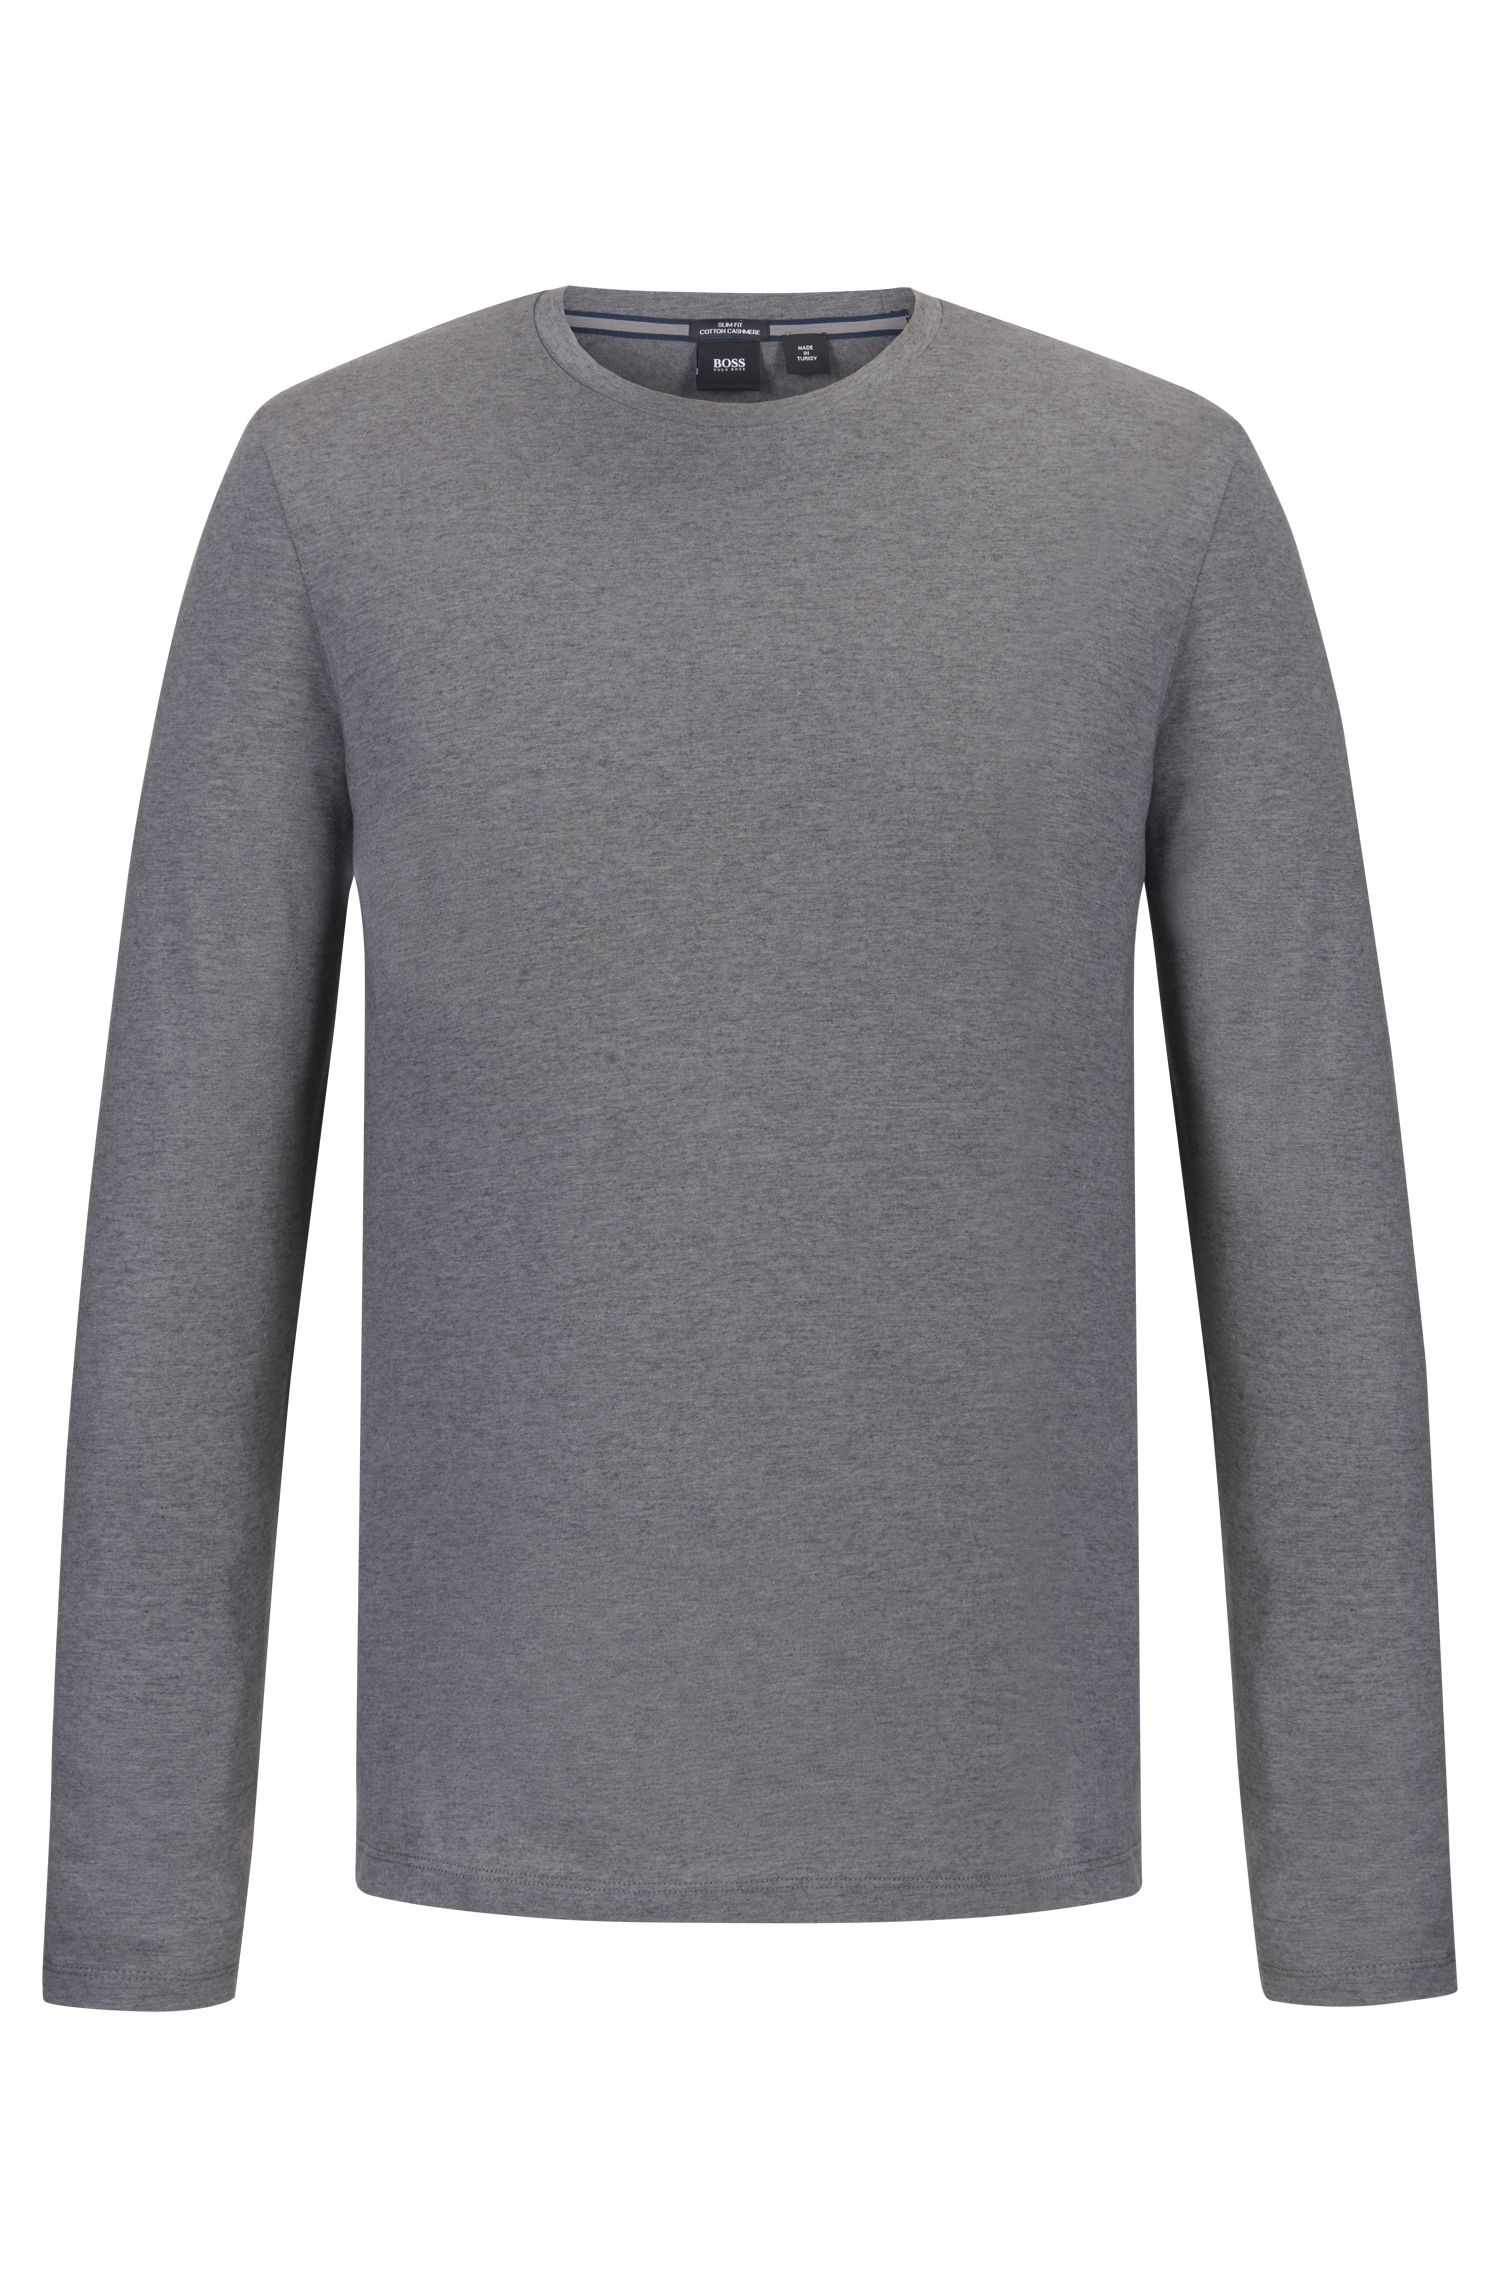 Cotton-Cashmere T-Shirt | Tenison